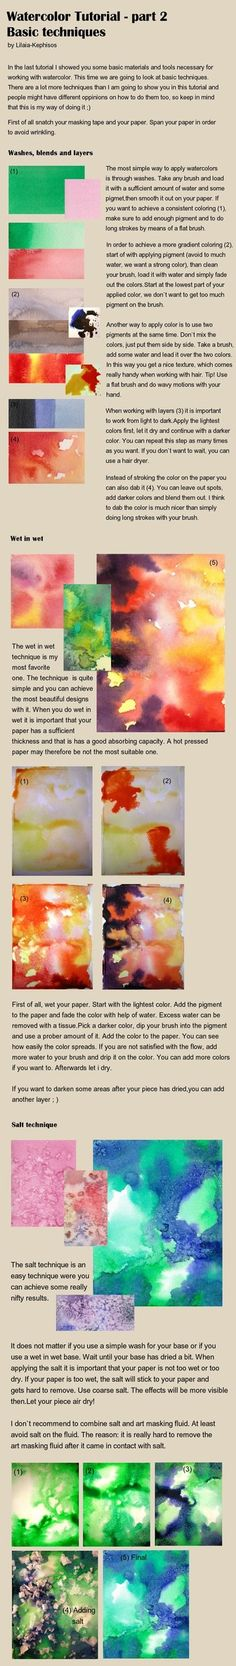 Watercolor tutorial part 2 by *Fossegrimen on deviantART